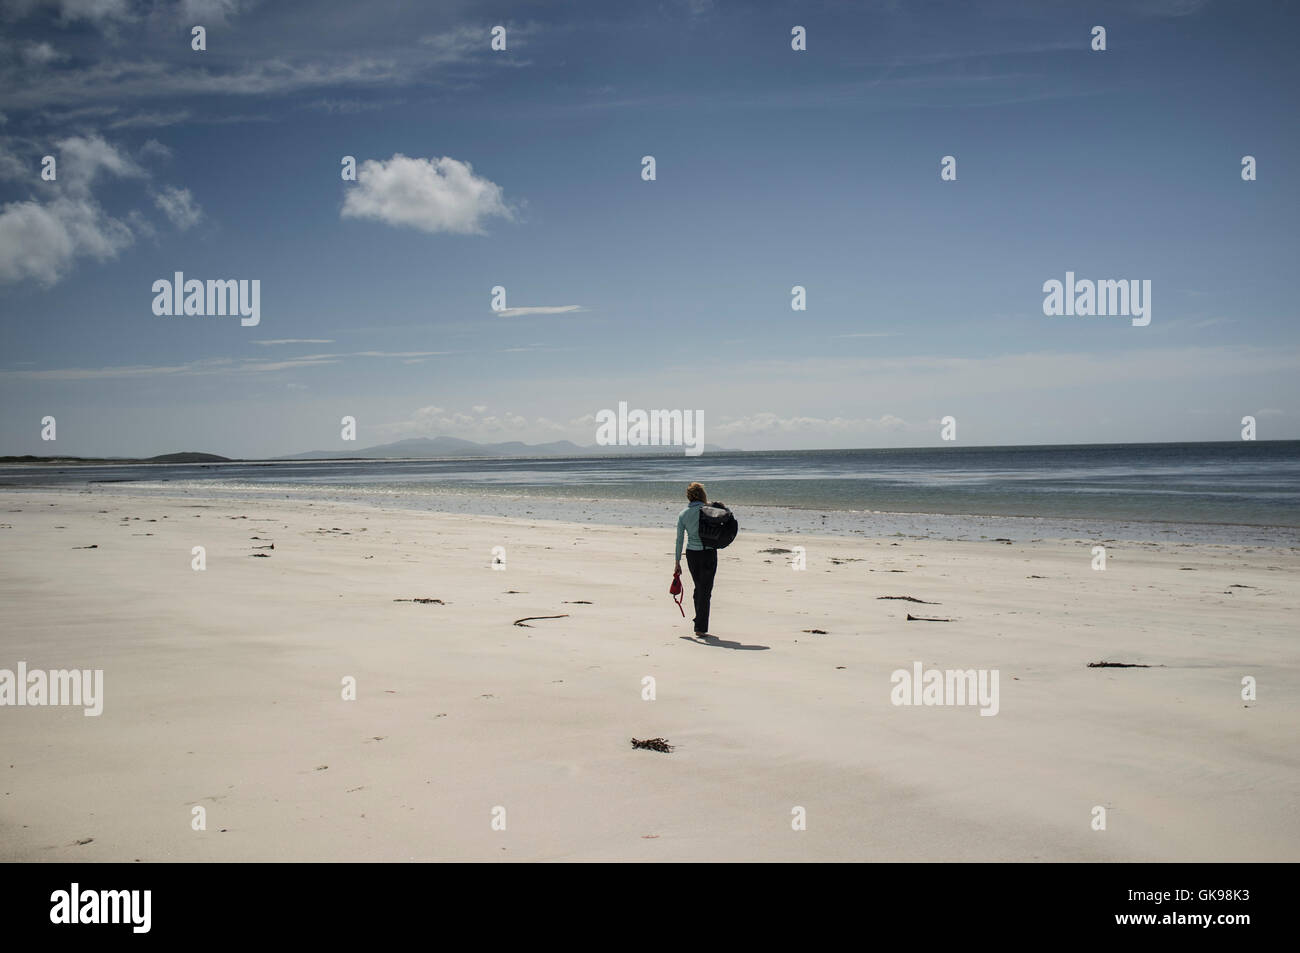 A figure on a large empty beach on the west, Atlantic coast of the Outer Hebrides island of South Uist - Stock Image